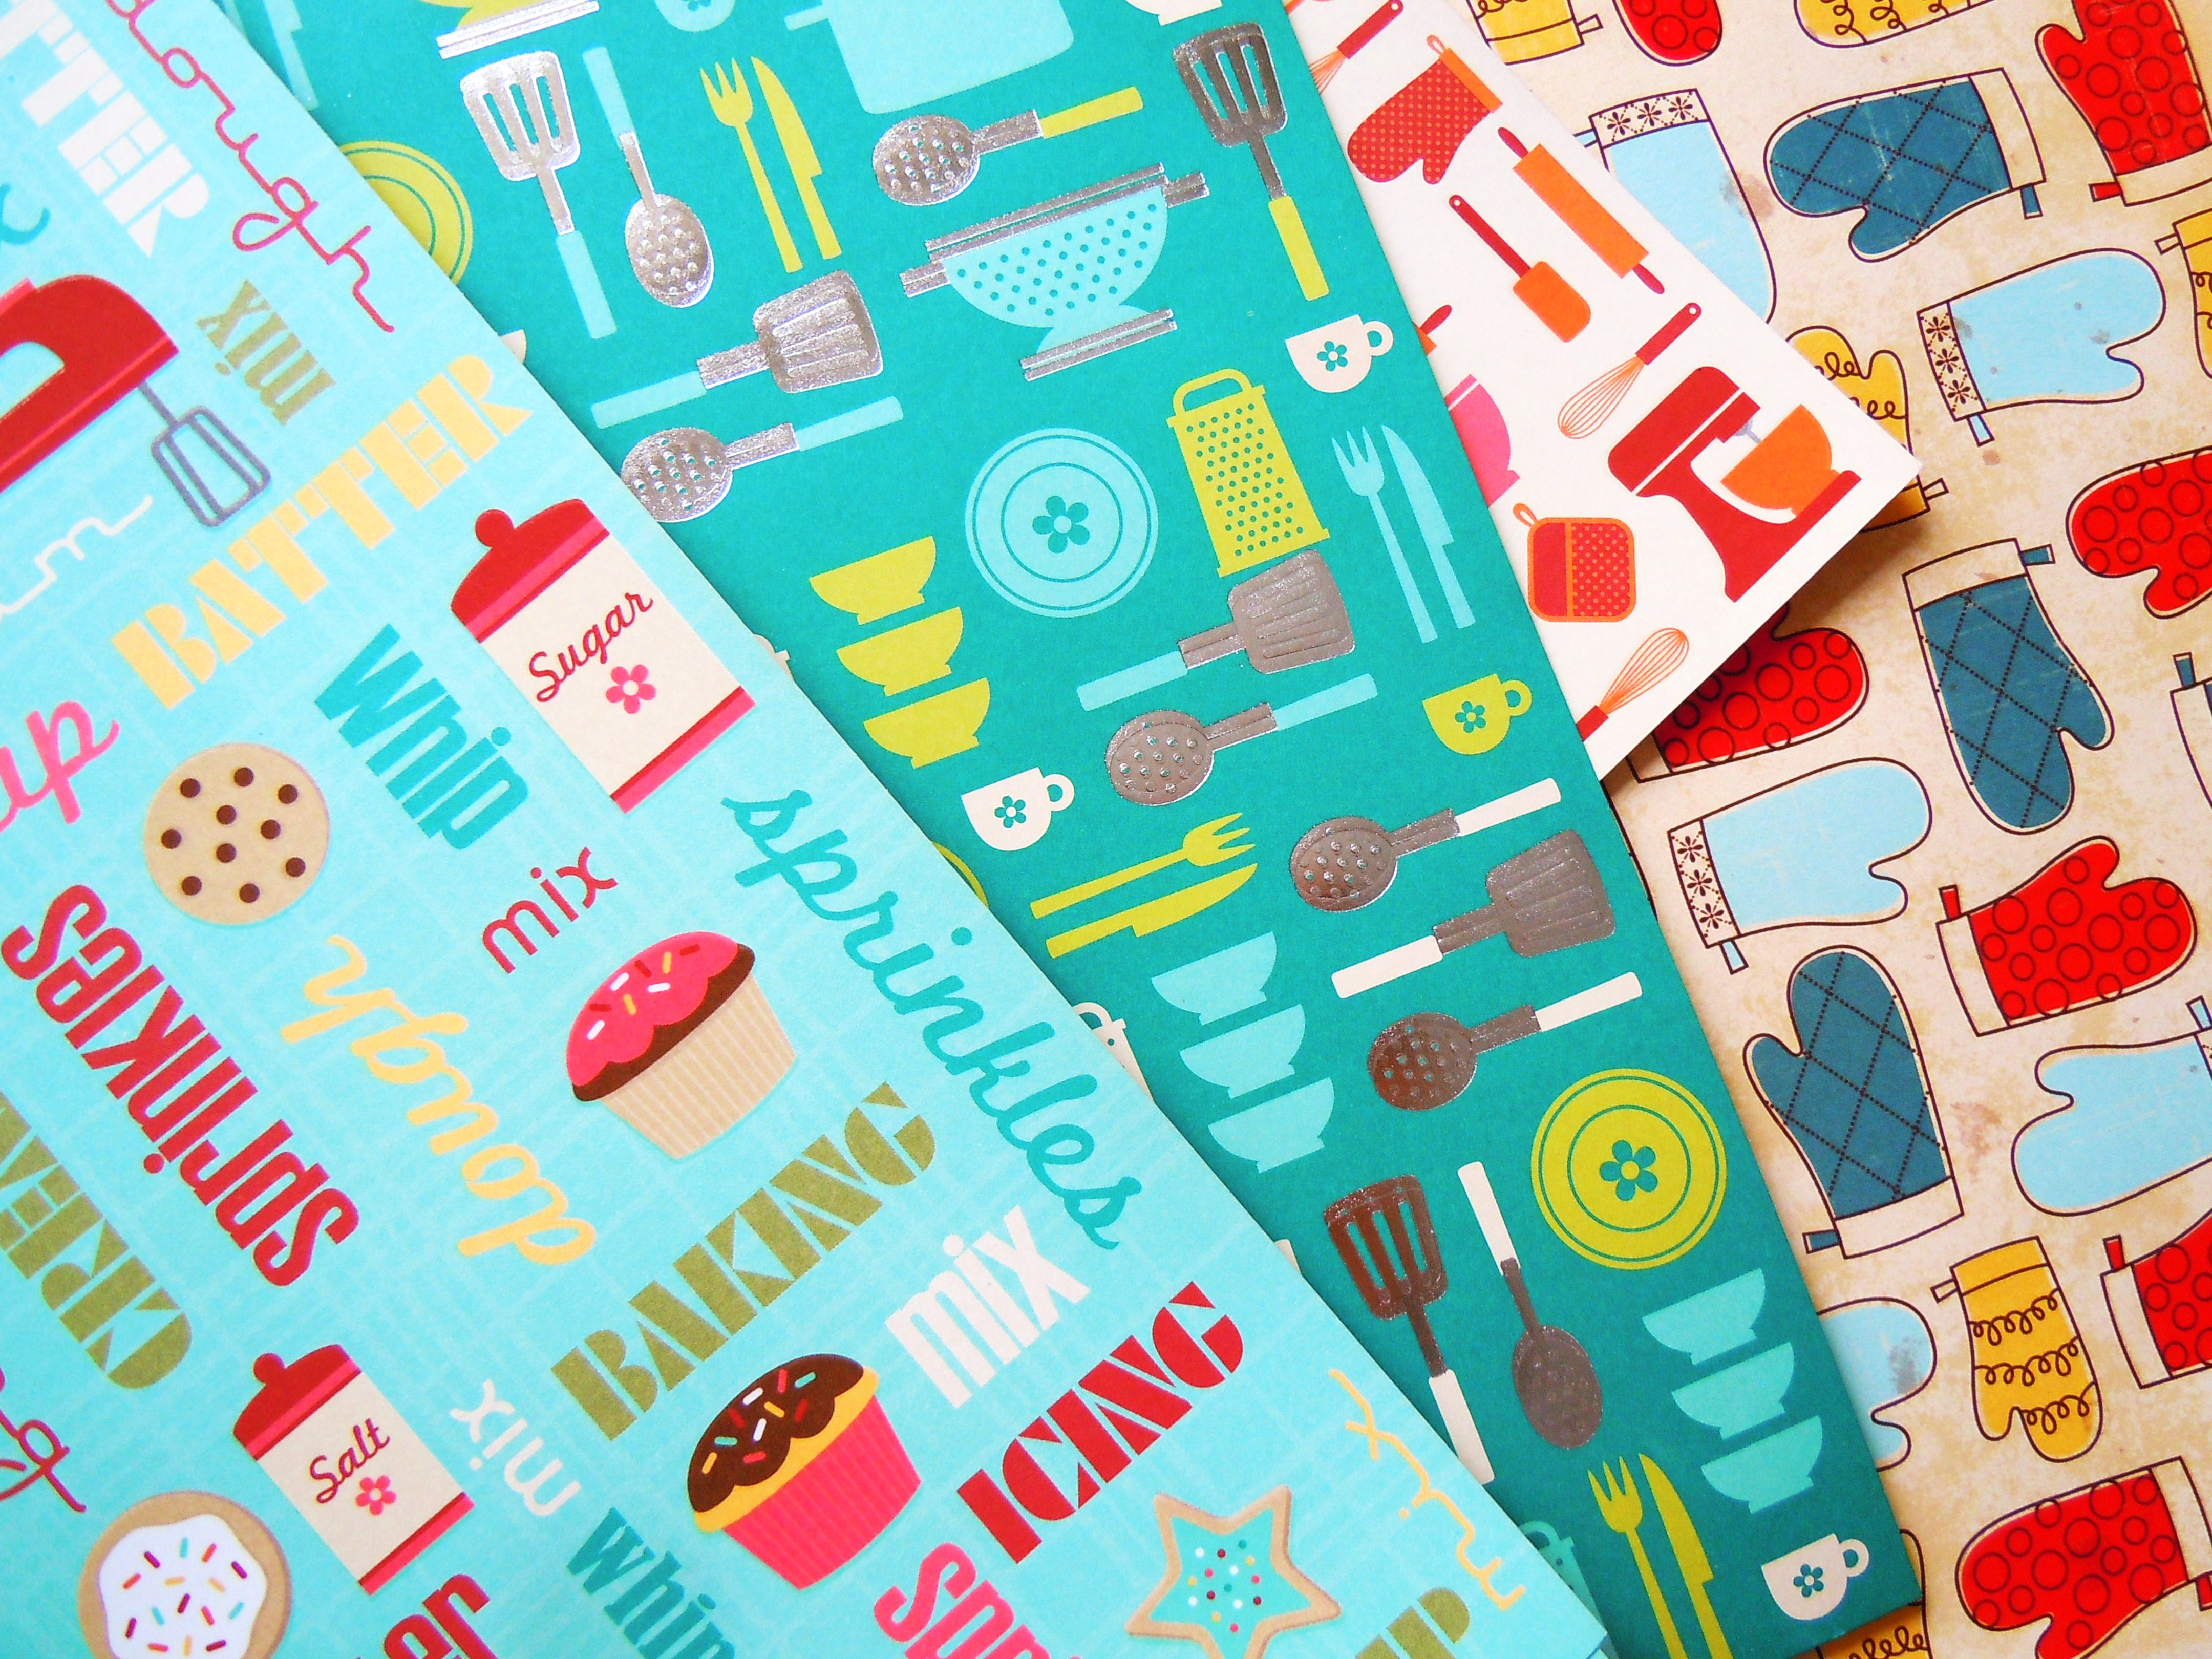 Scrapbook paper and stickers - De Serres Has The Most Amazing Selection Of Patterned Paper And The Best Part They Carry A Ton Of Cardstock And Paper Pads By My Favourite Scrapbook Brand